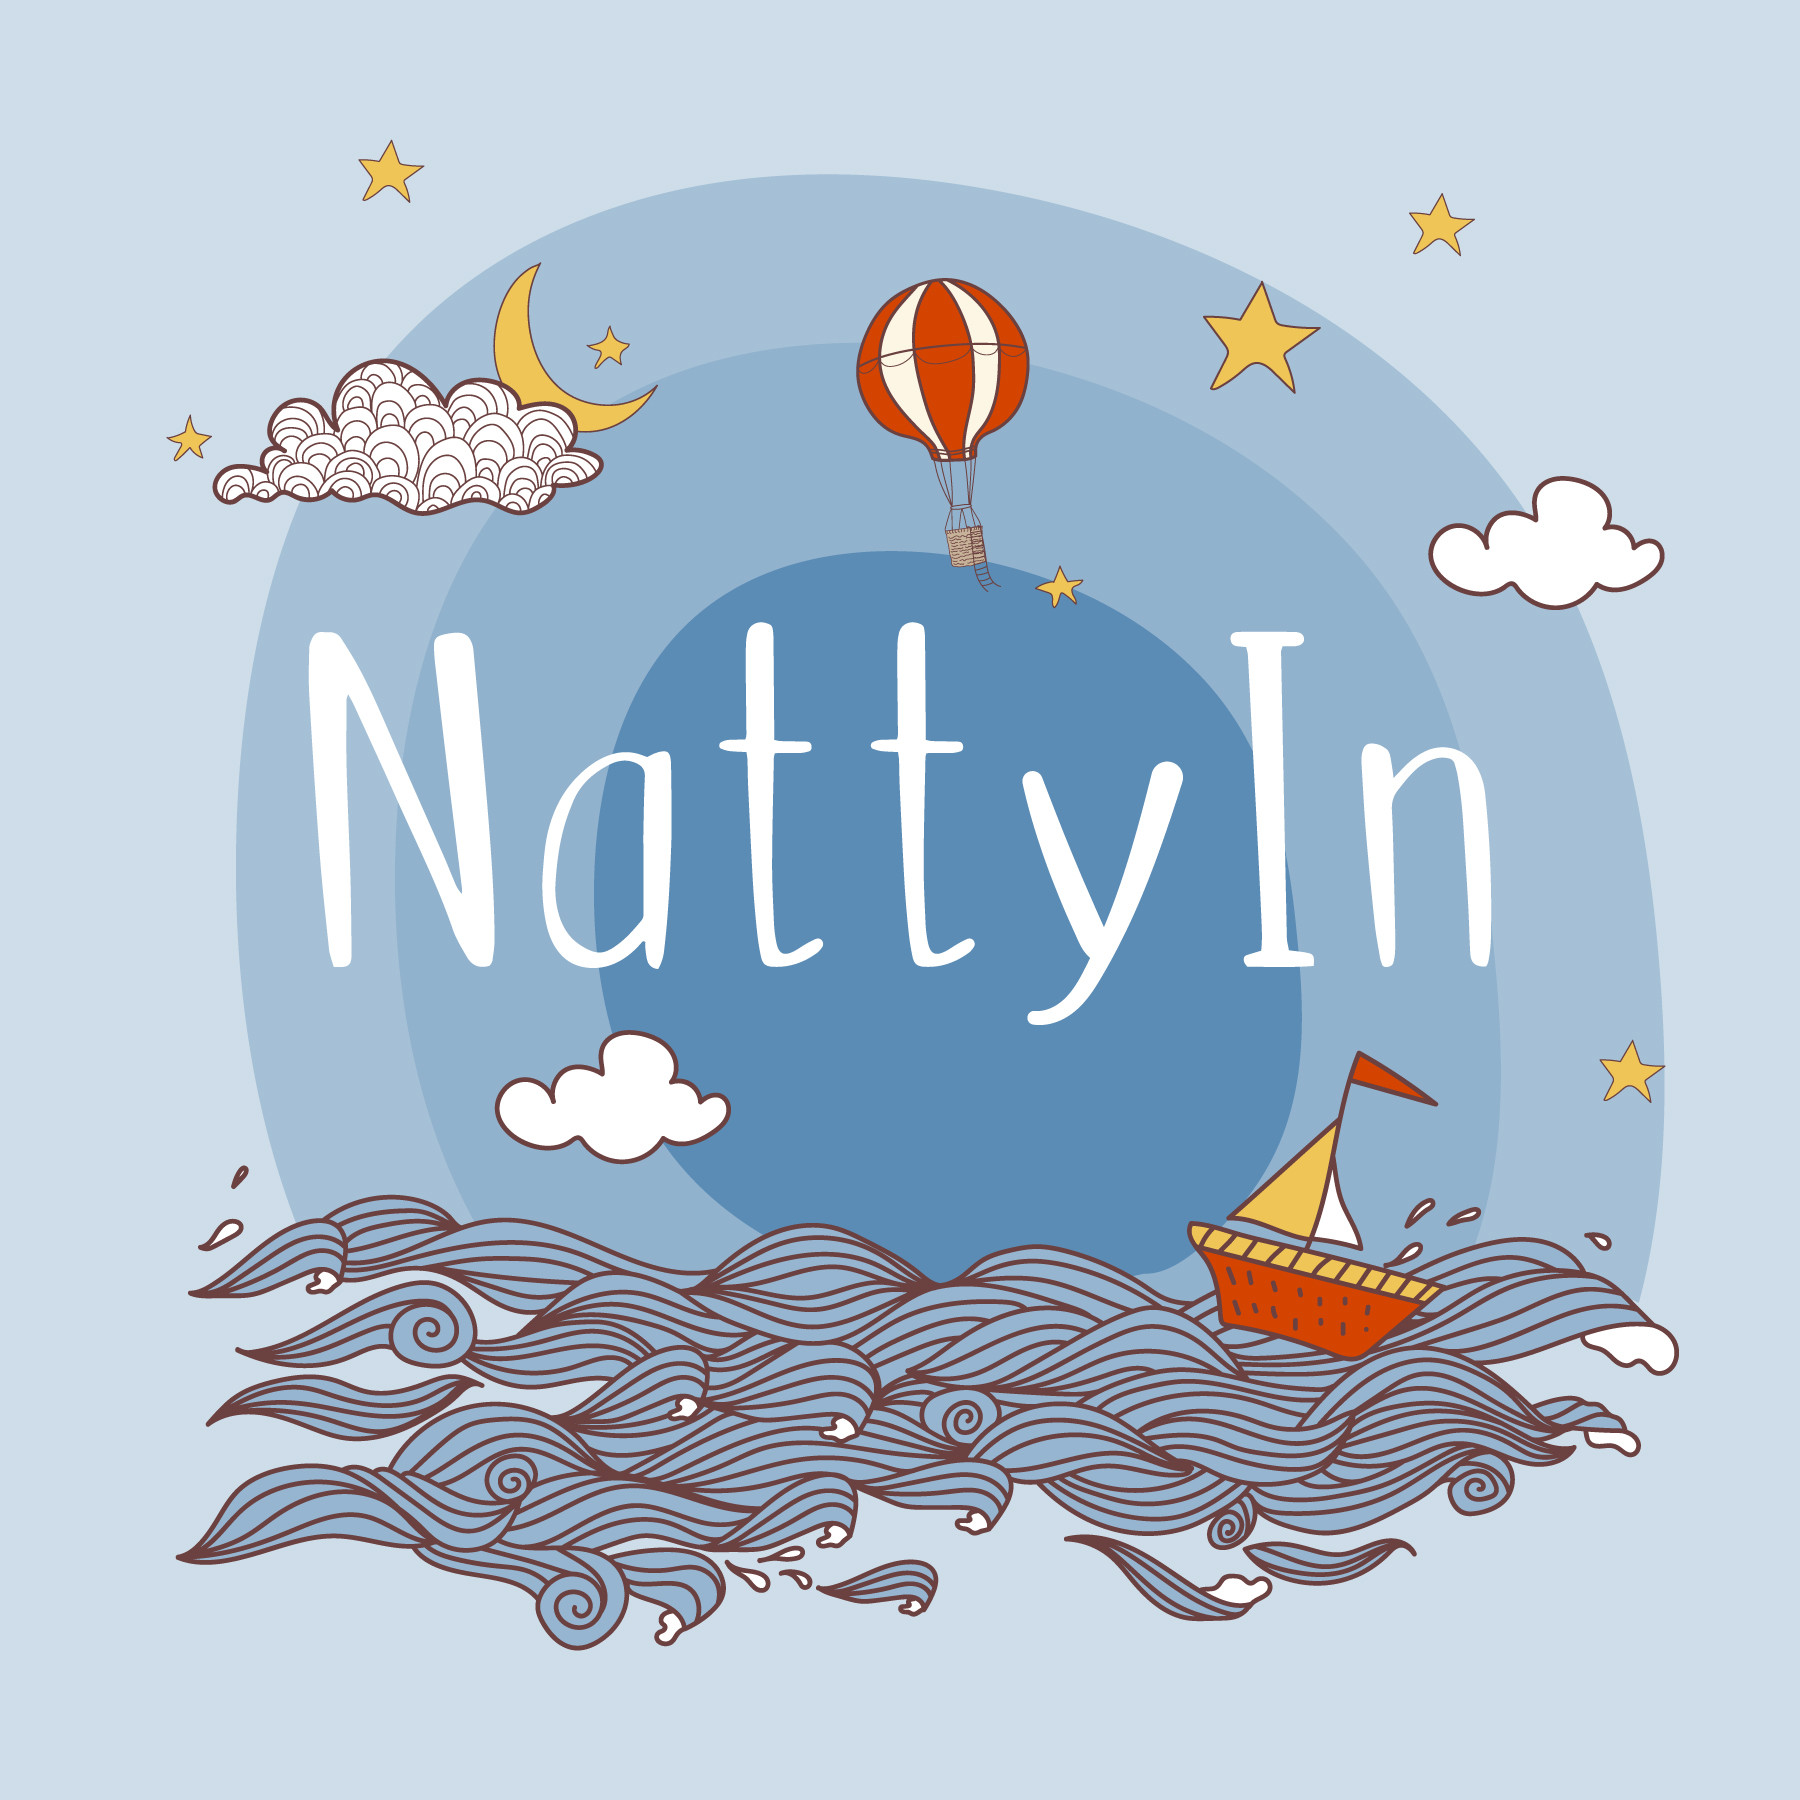 Nattyinshop's profile picture